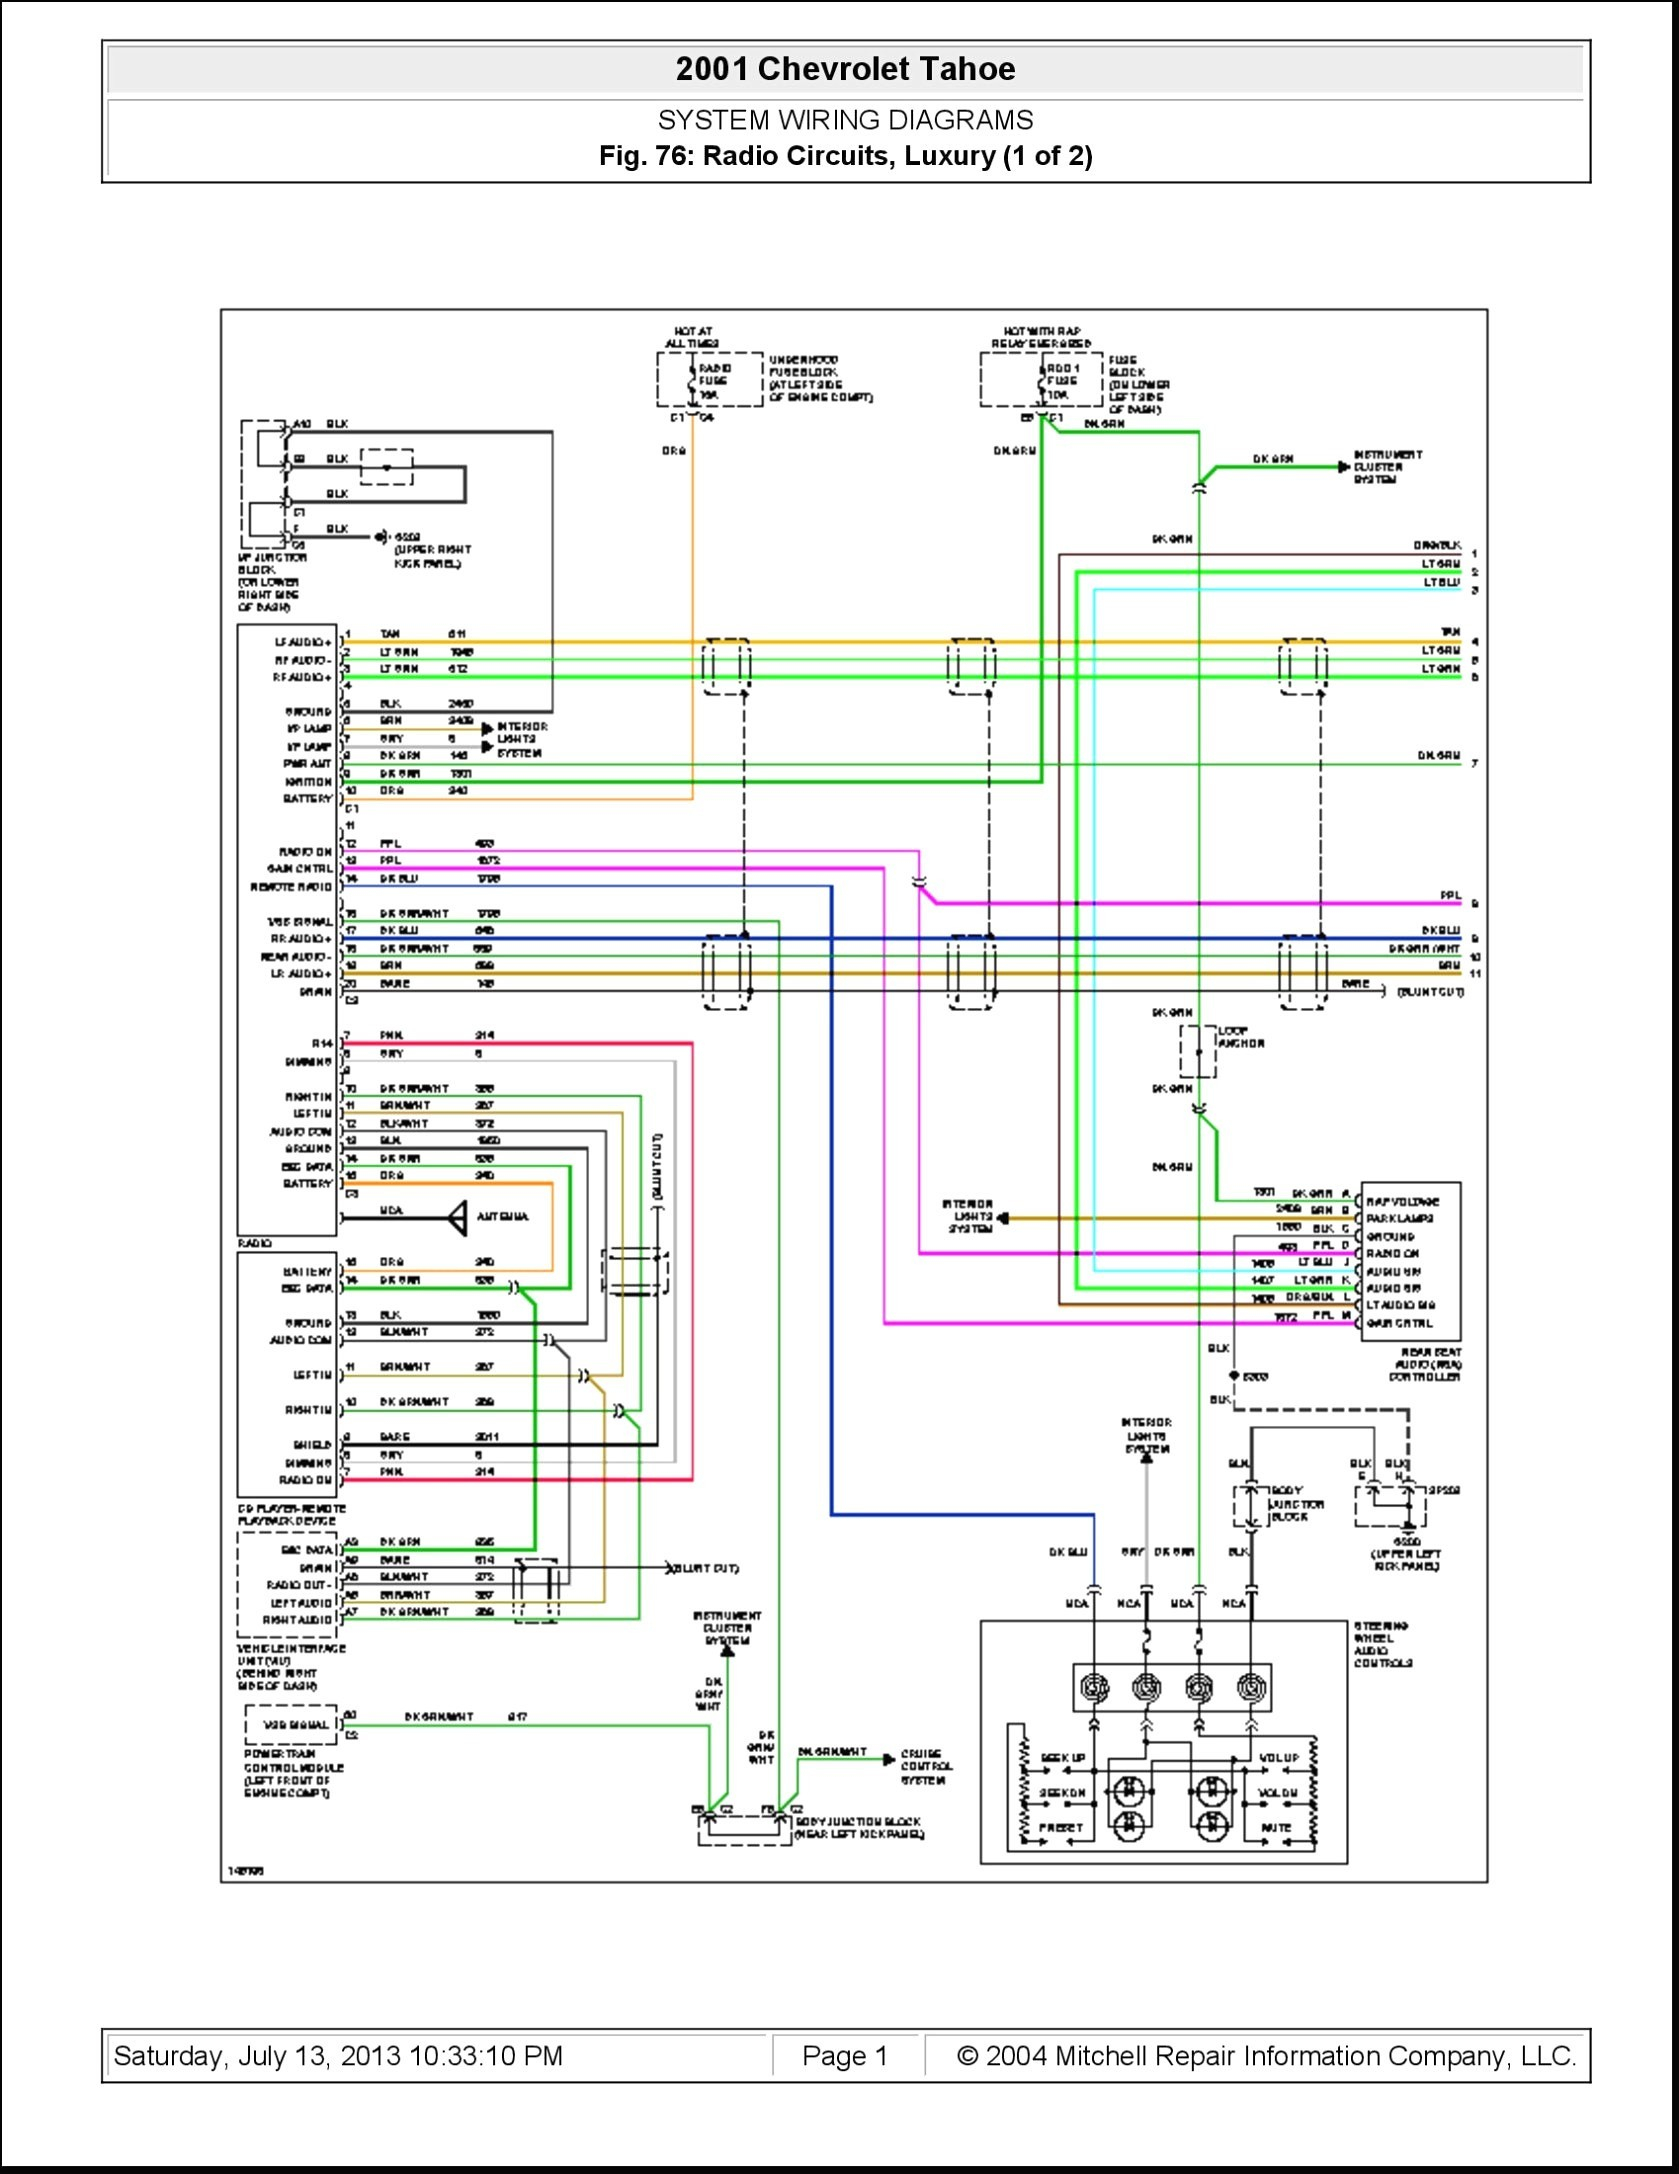 hight resolution of 1991 suburban fuse diagram wiring diagram mega1991 suburban fuse diagram wiring diagram new 1991 gmc suburban